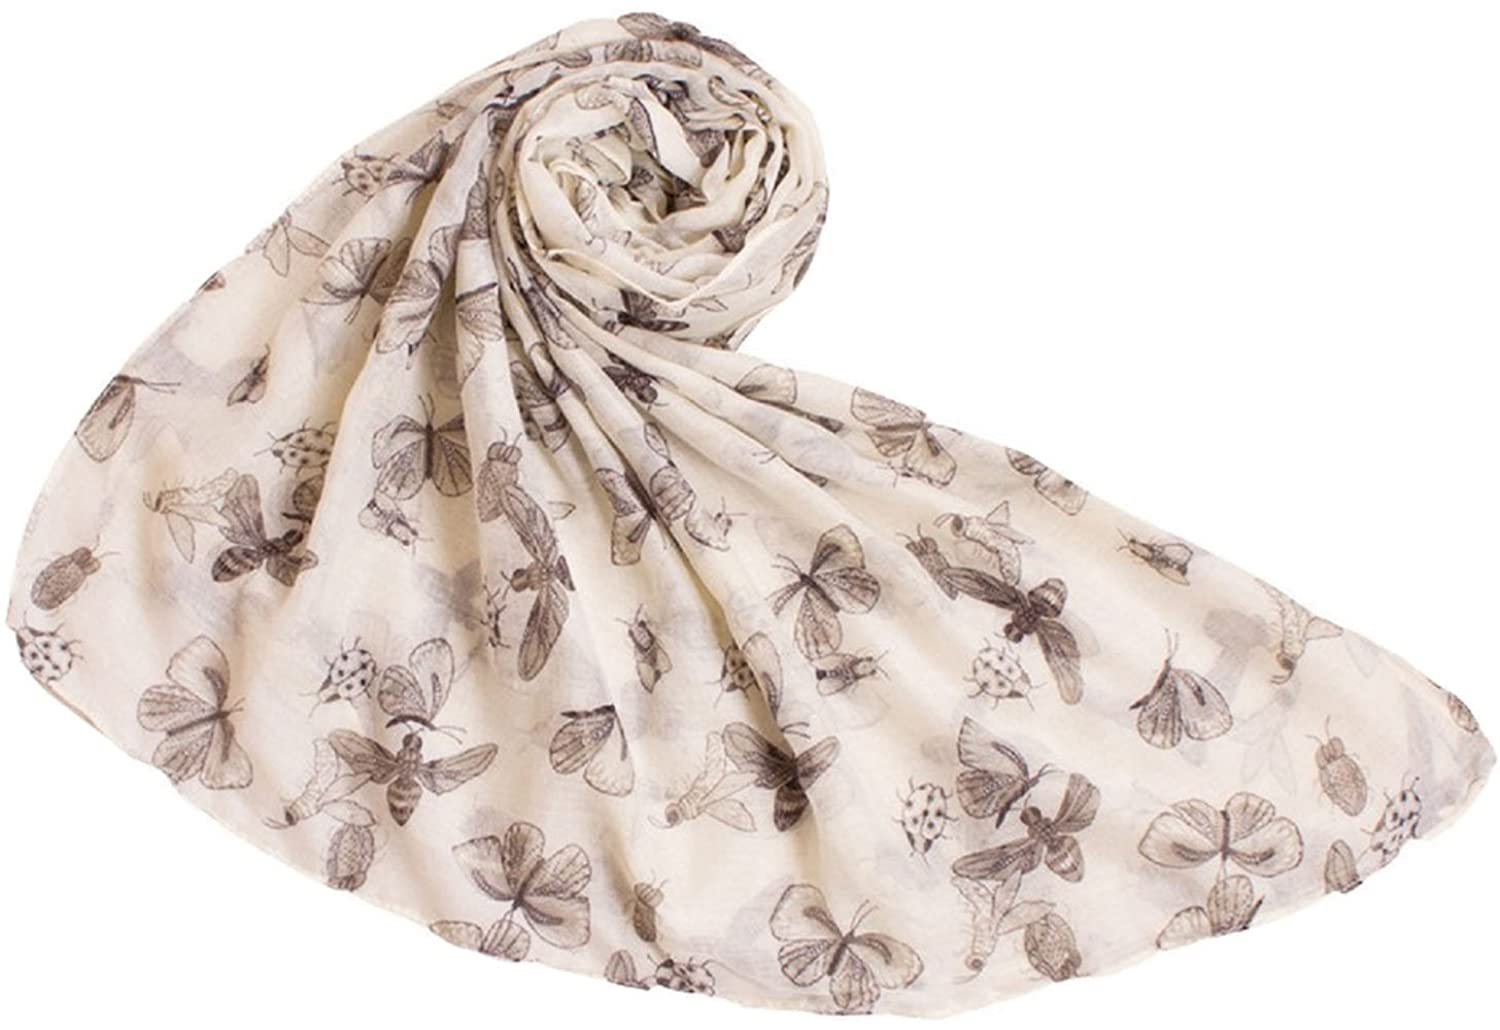 Bettyhome Fashion Girls Insect Pattern Voile Women's Large Beach Scarf Shawl Lightweight